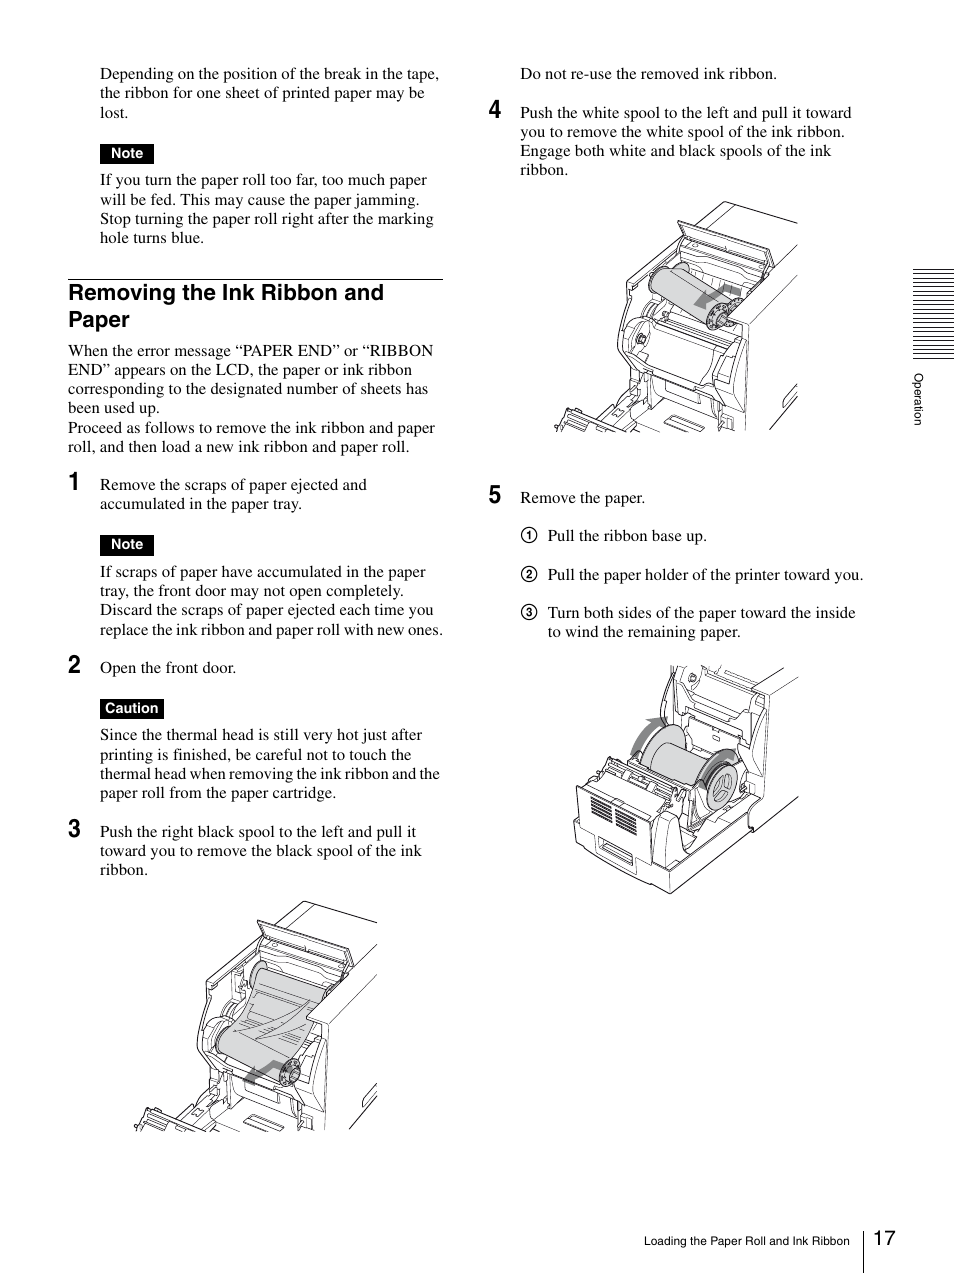 removing the ink ribbon and paper sony up dr150 user manual page rh manualsdir com Sony User Manuals Sony 5 CD Recorder Sony DAV HDX576WF Manual